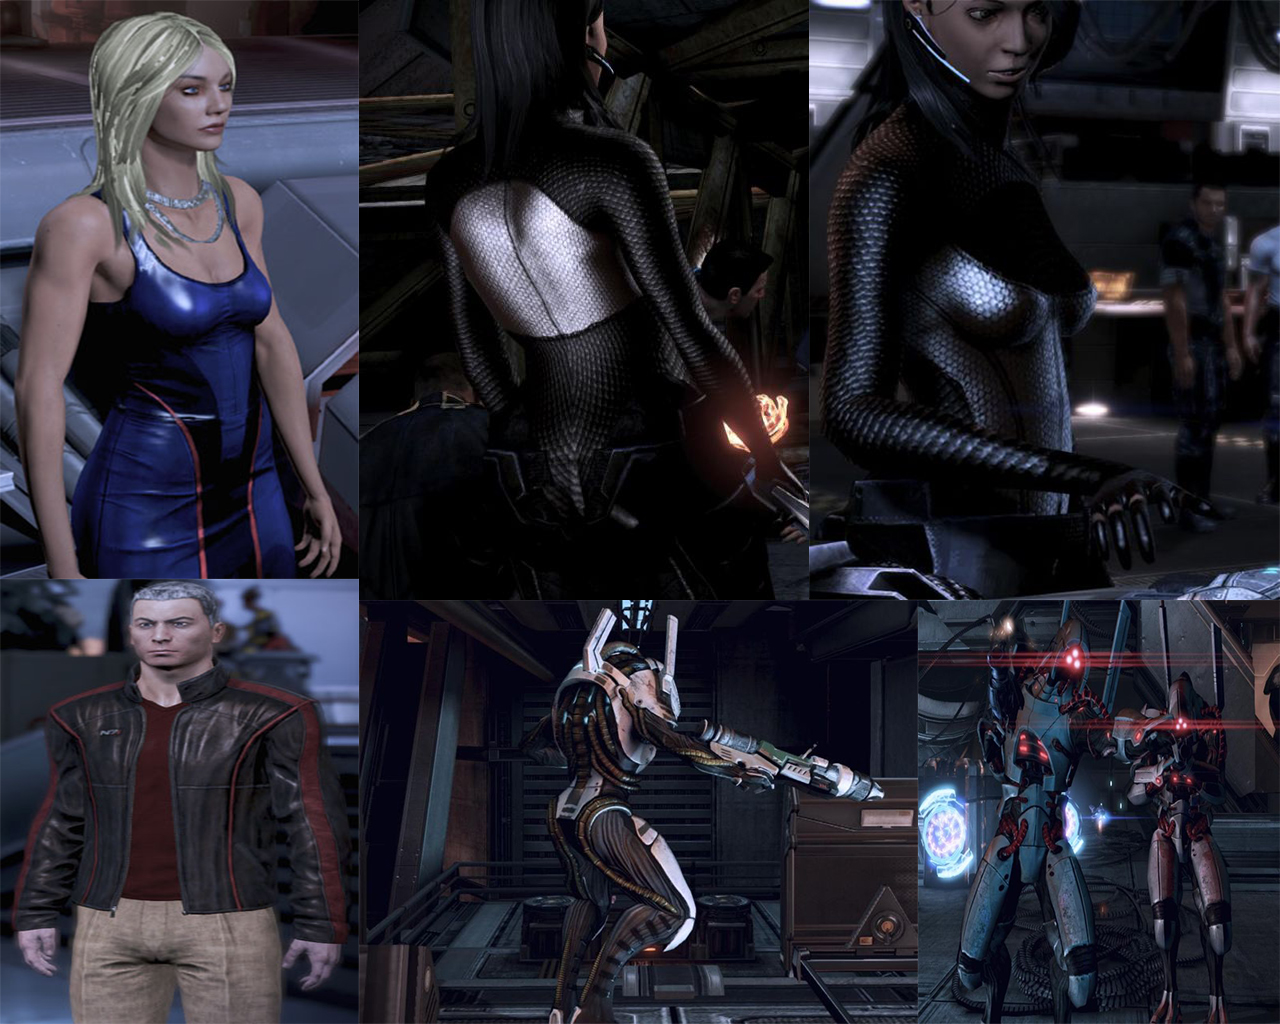 Mass effect 3 nudity patch hentai toons